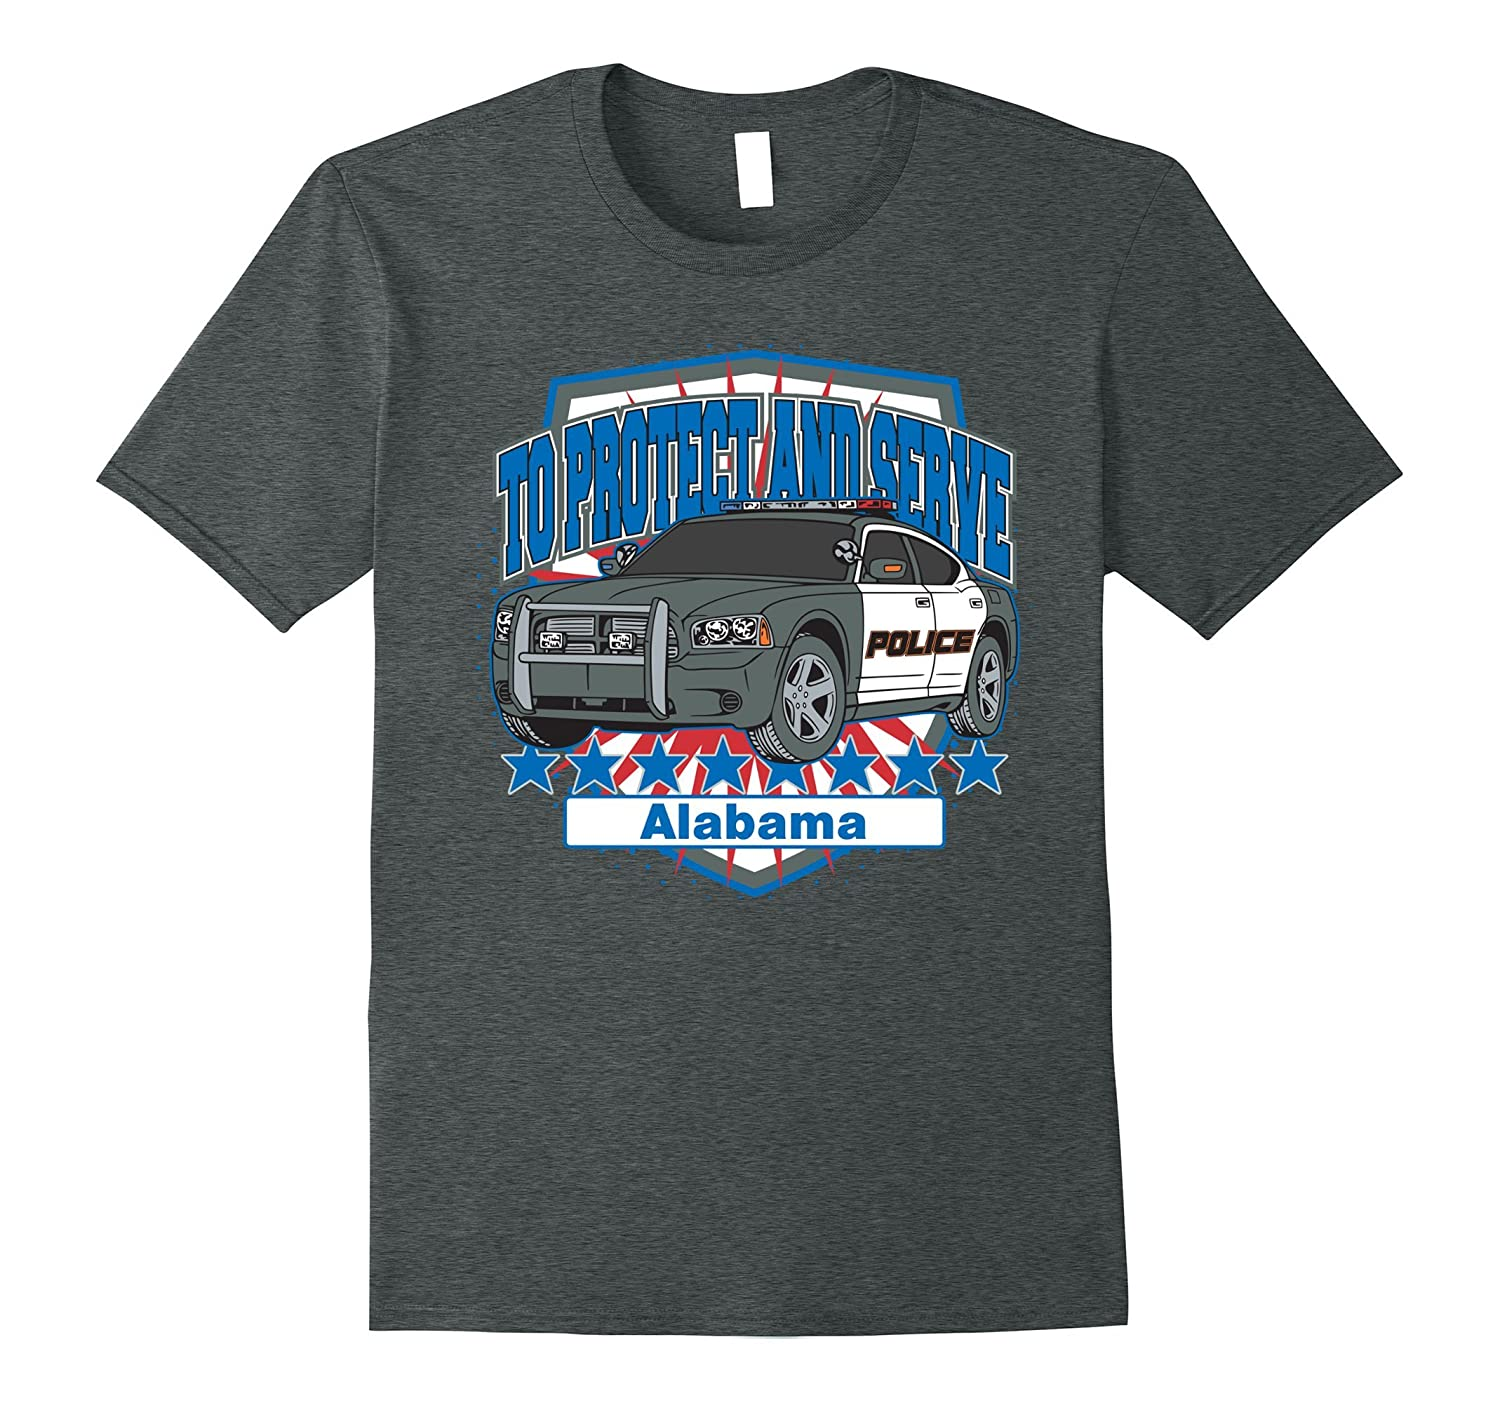 Alabama Police Car To Protect and Serve T-Shirt